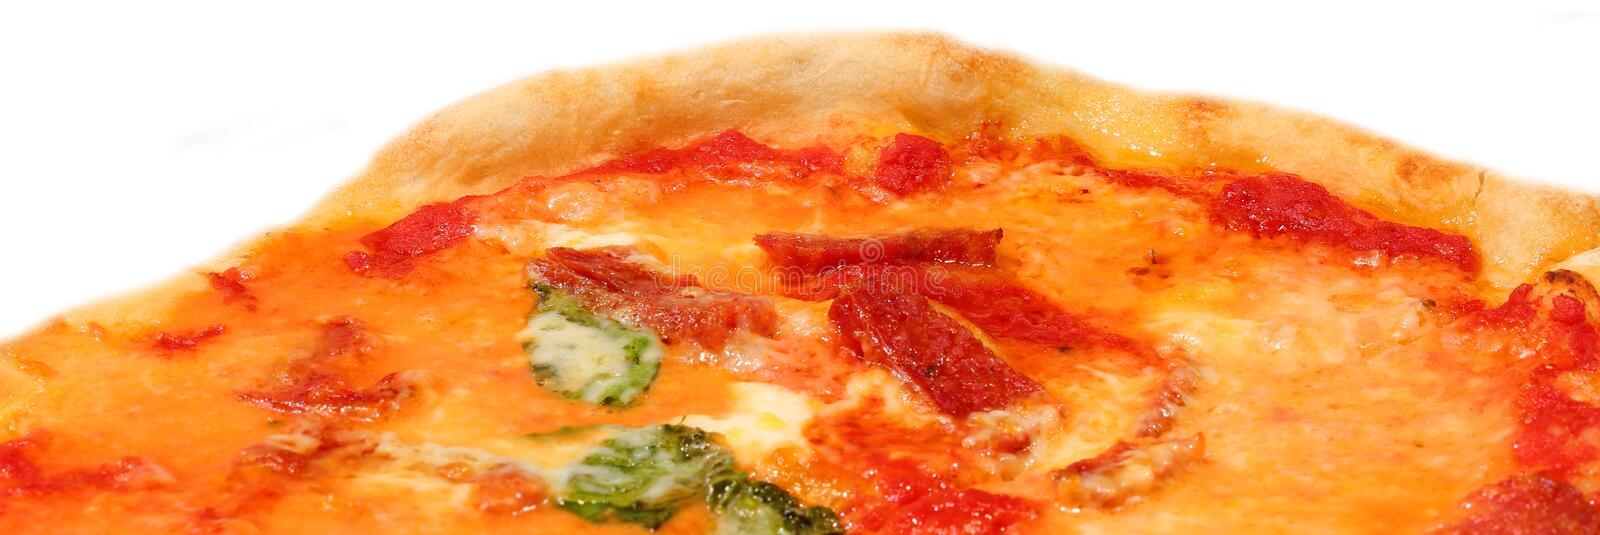 Detail of hot pizza royalty free stock photo